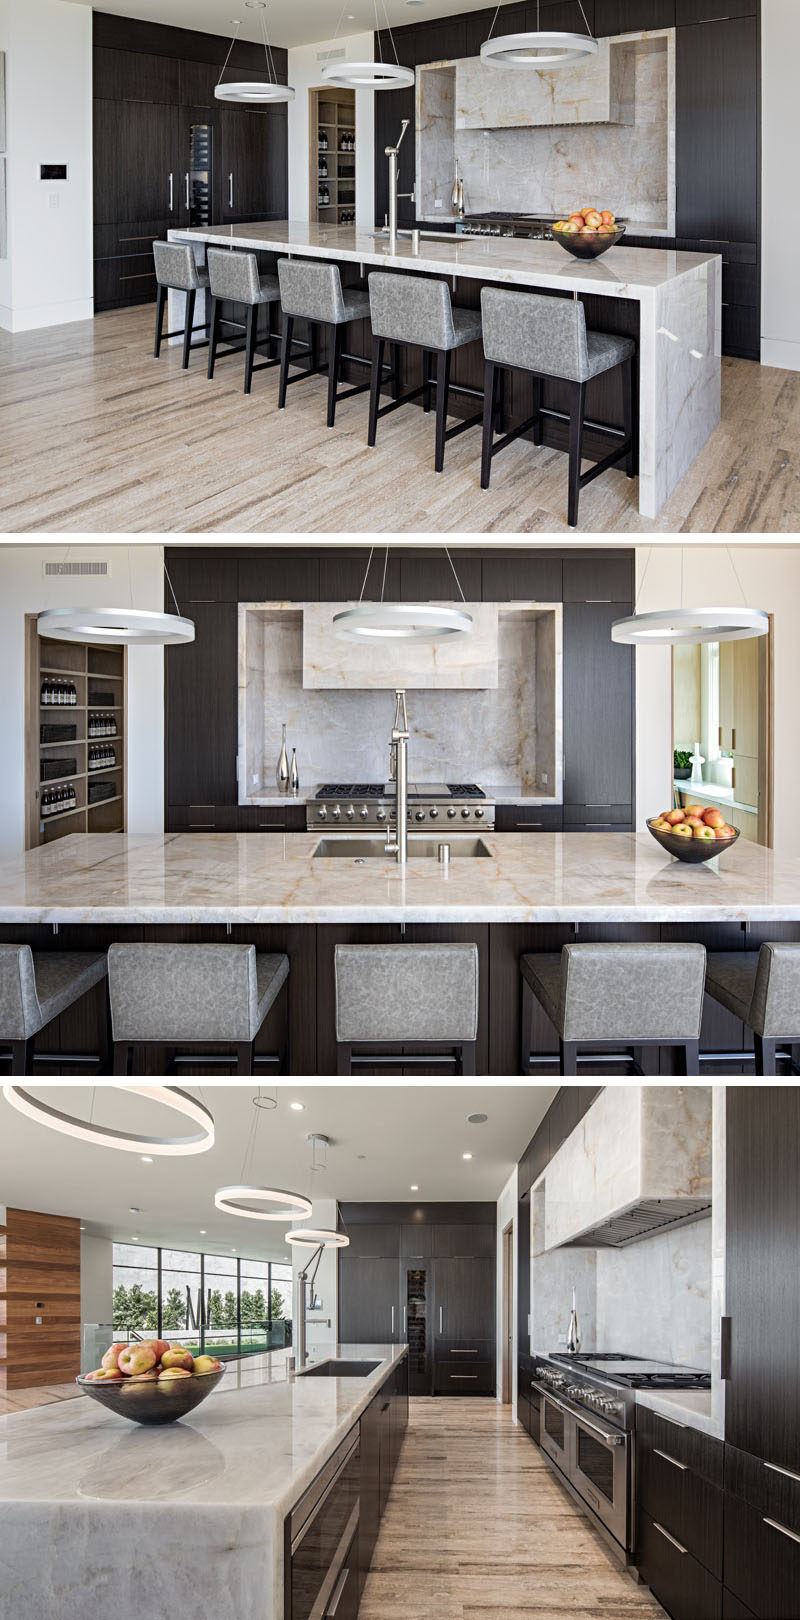 This modern kitchen has dark wood cabinets with a light colored stone countertop that's featured on the island and surrounding the stove top.